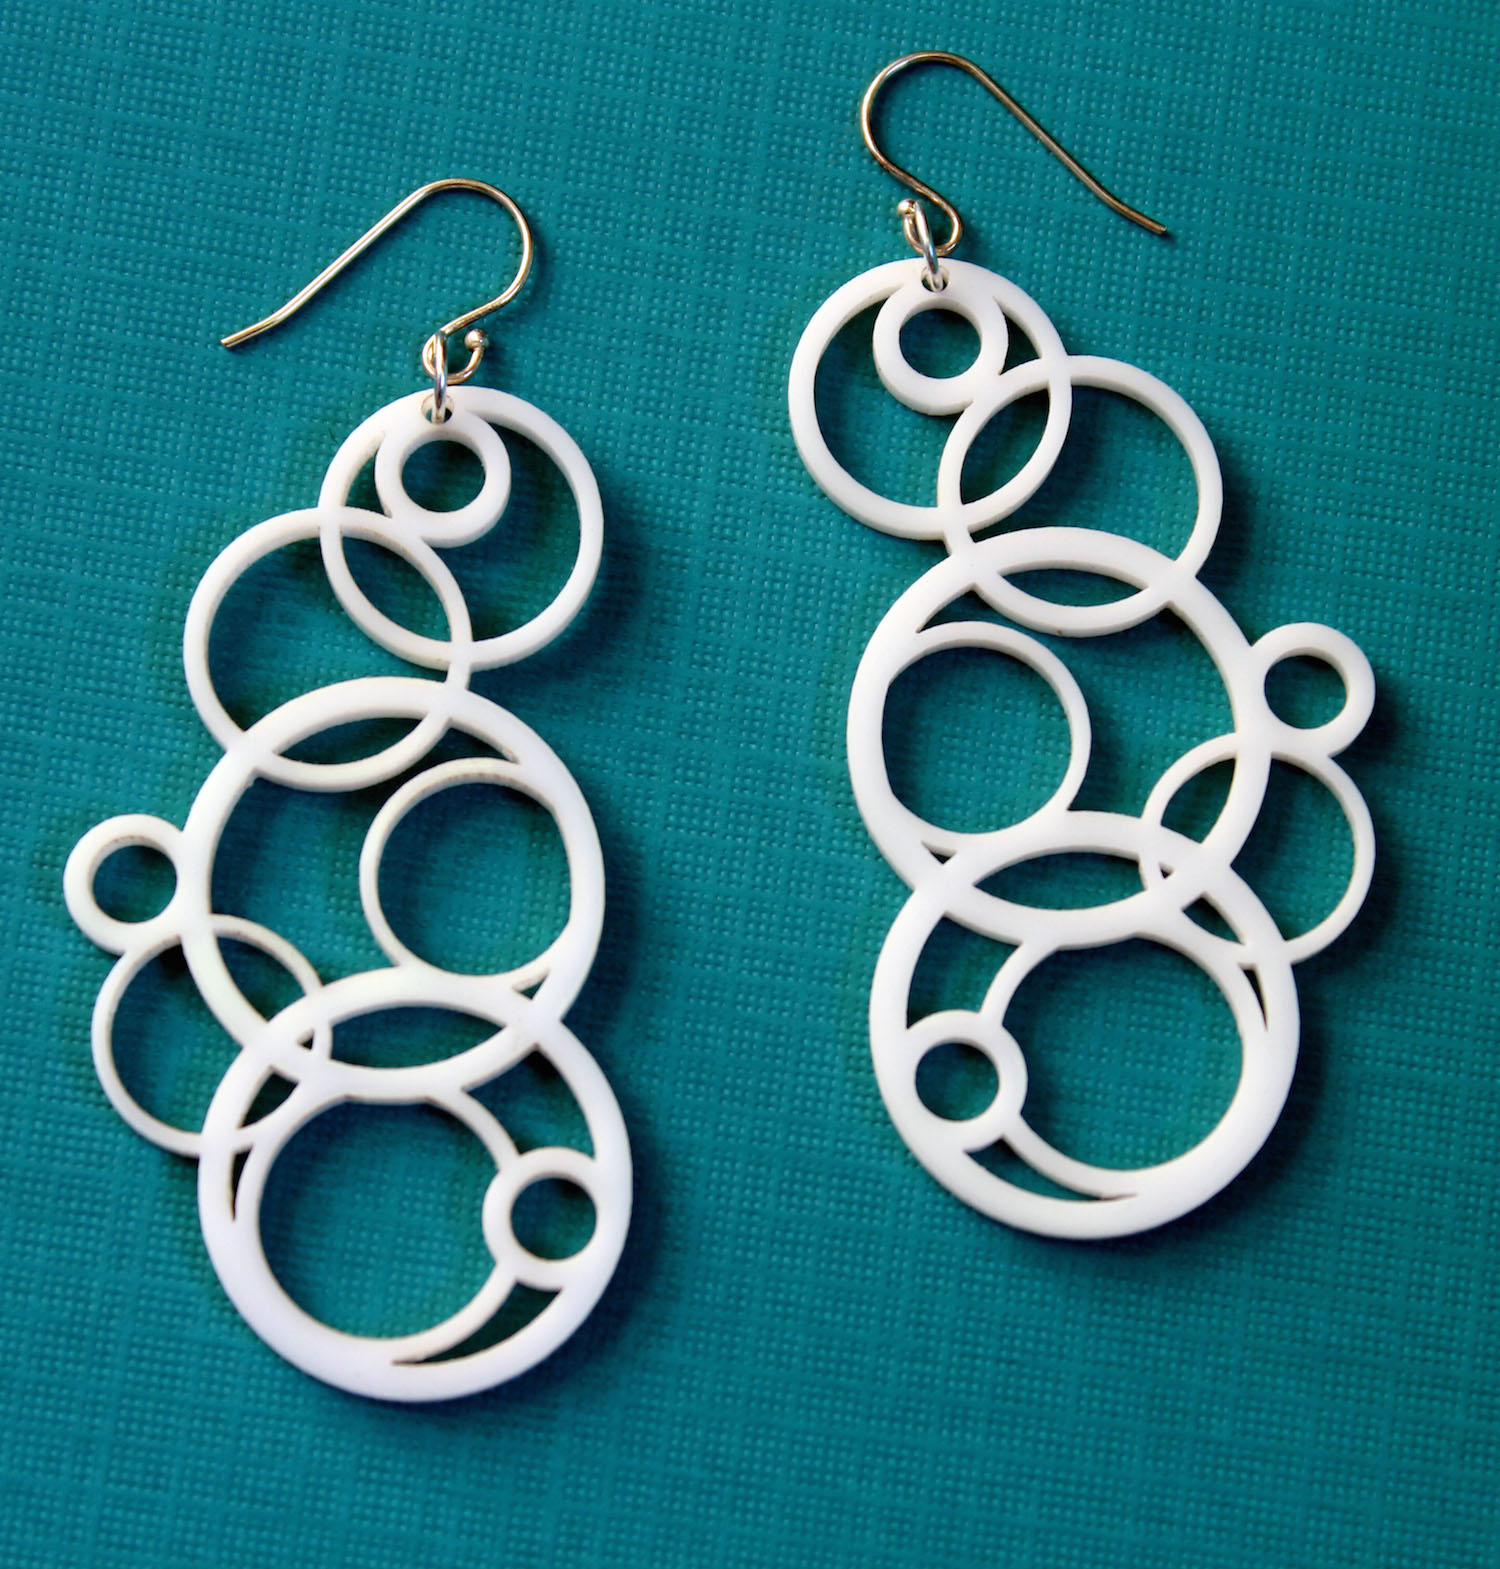 Melanie Lynn Design 7 - Laser Cut Acrylic Jewelry - White Circle